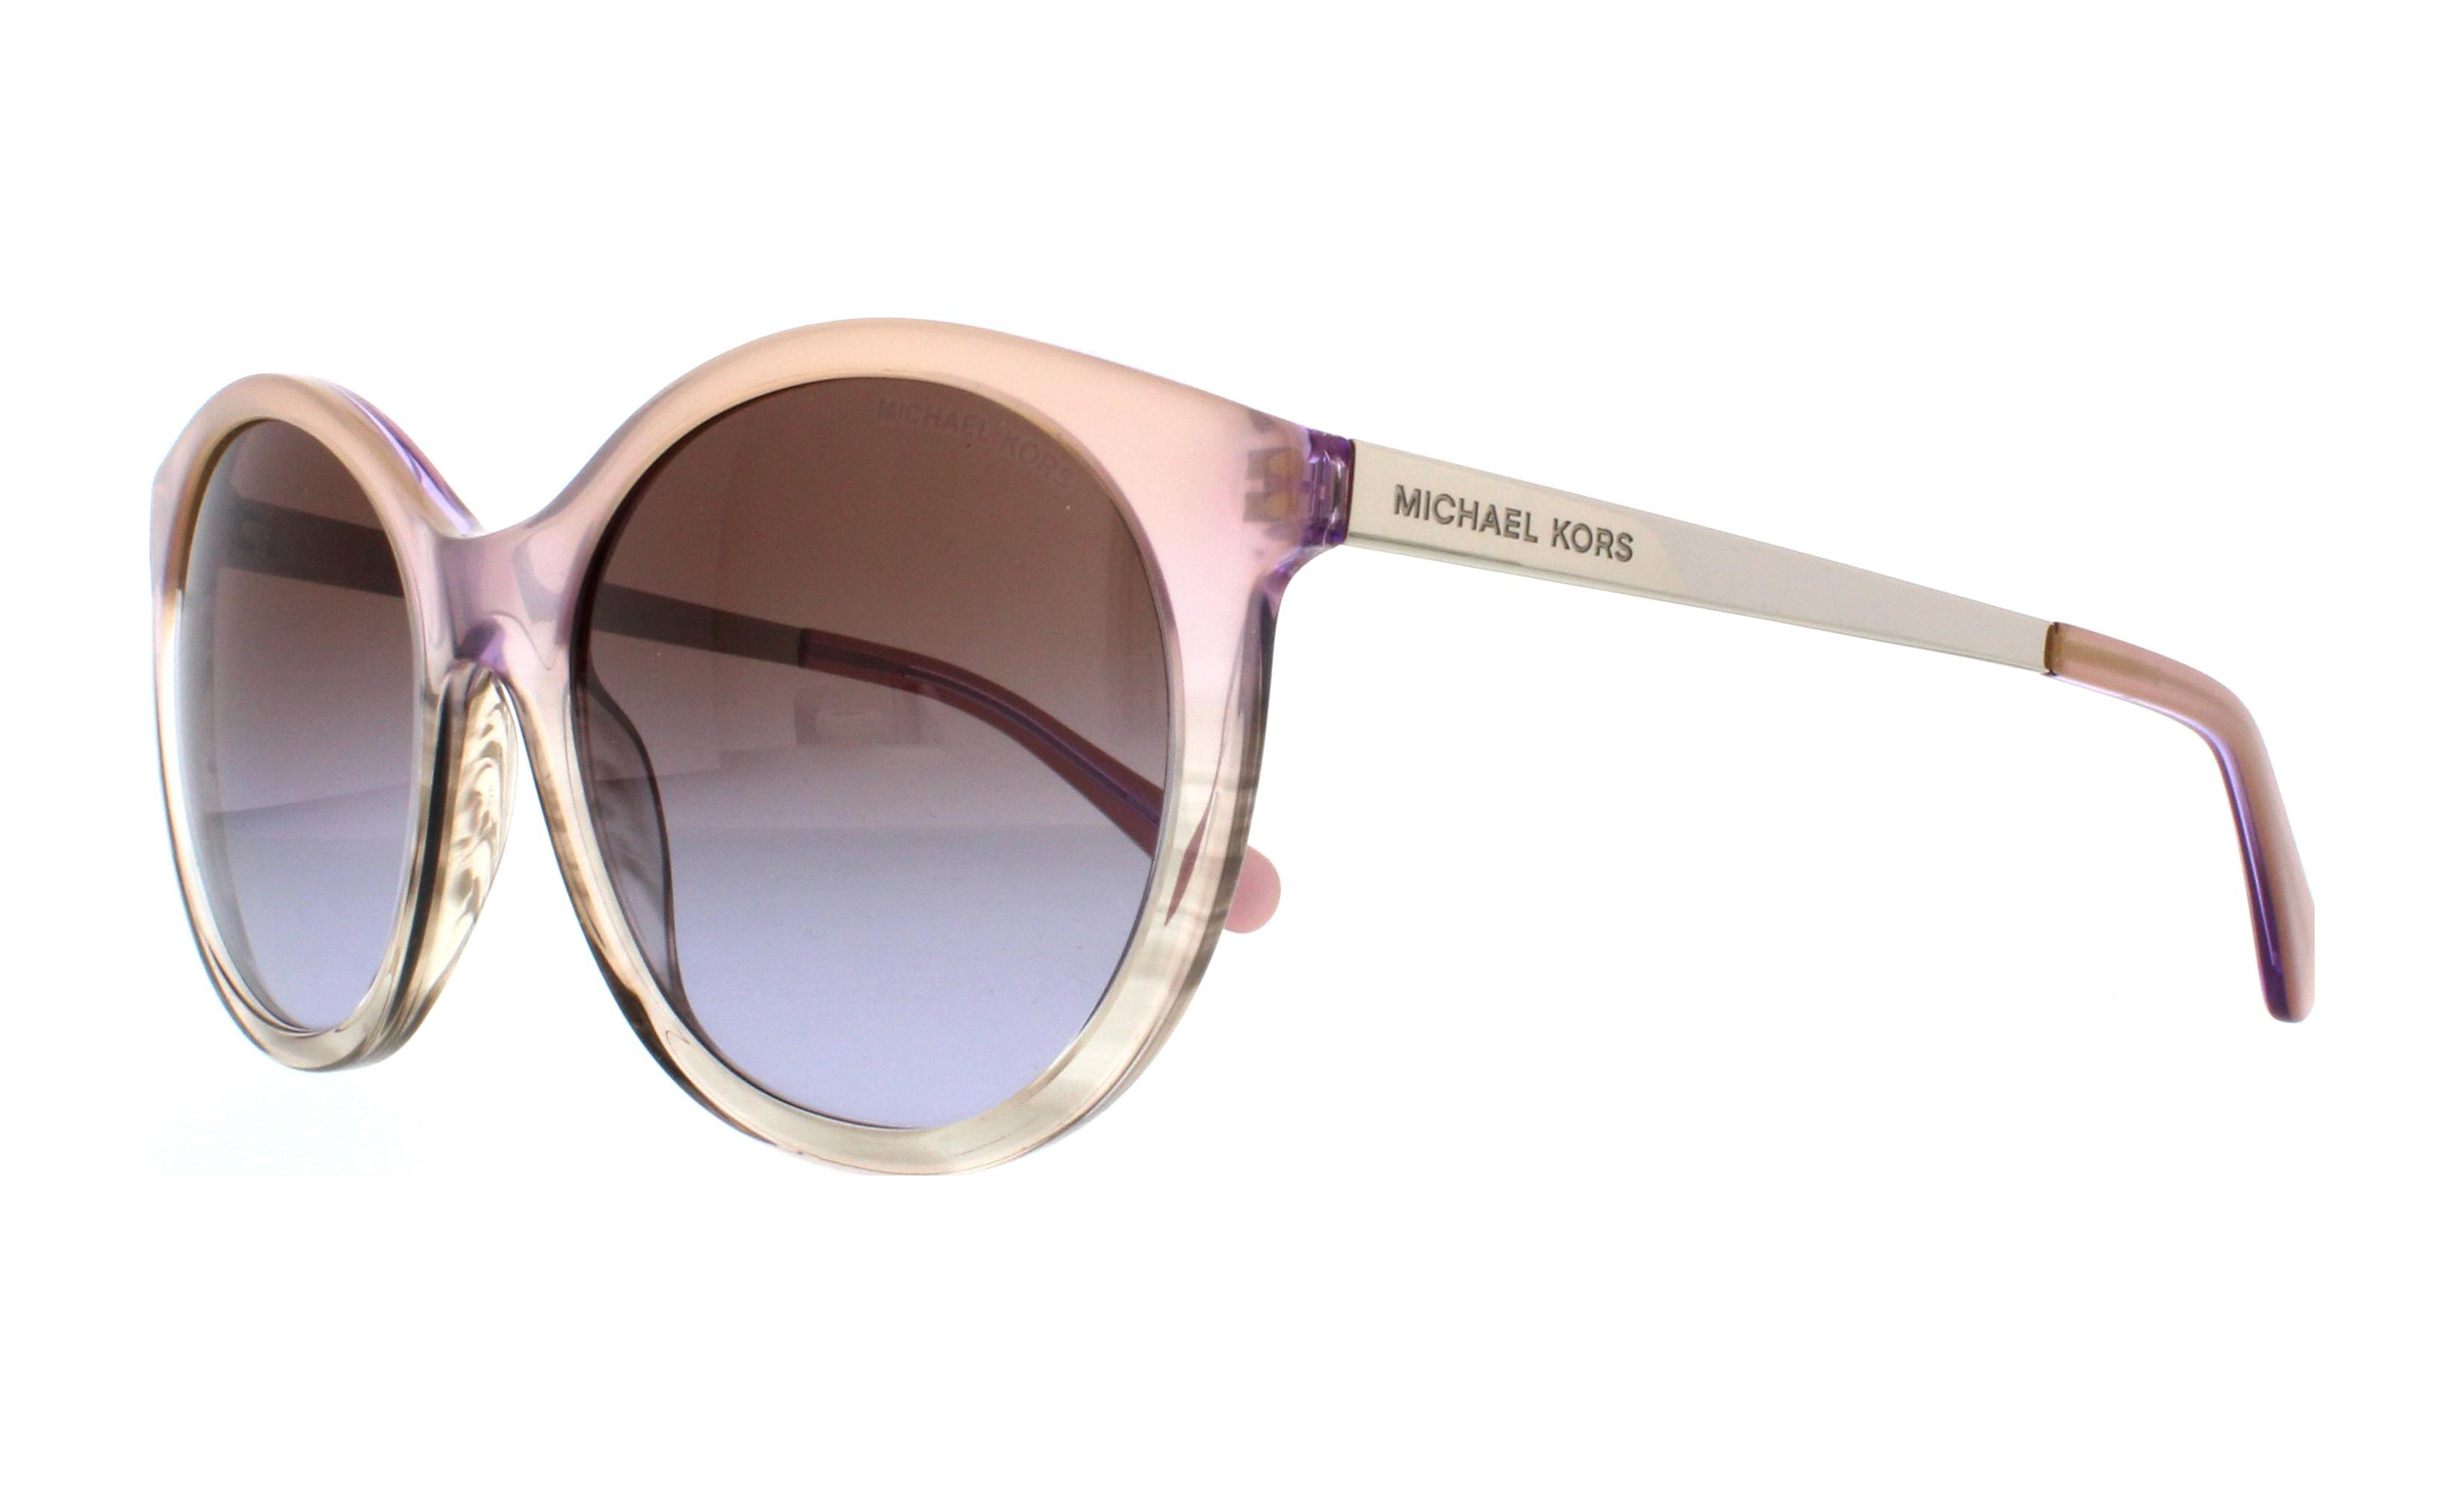 e48c4ac3fc9 MICHAEL KORS Sunglasses MK2034 350668 Multicolor Purple 55MM ...